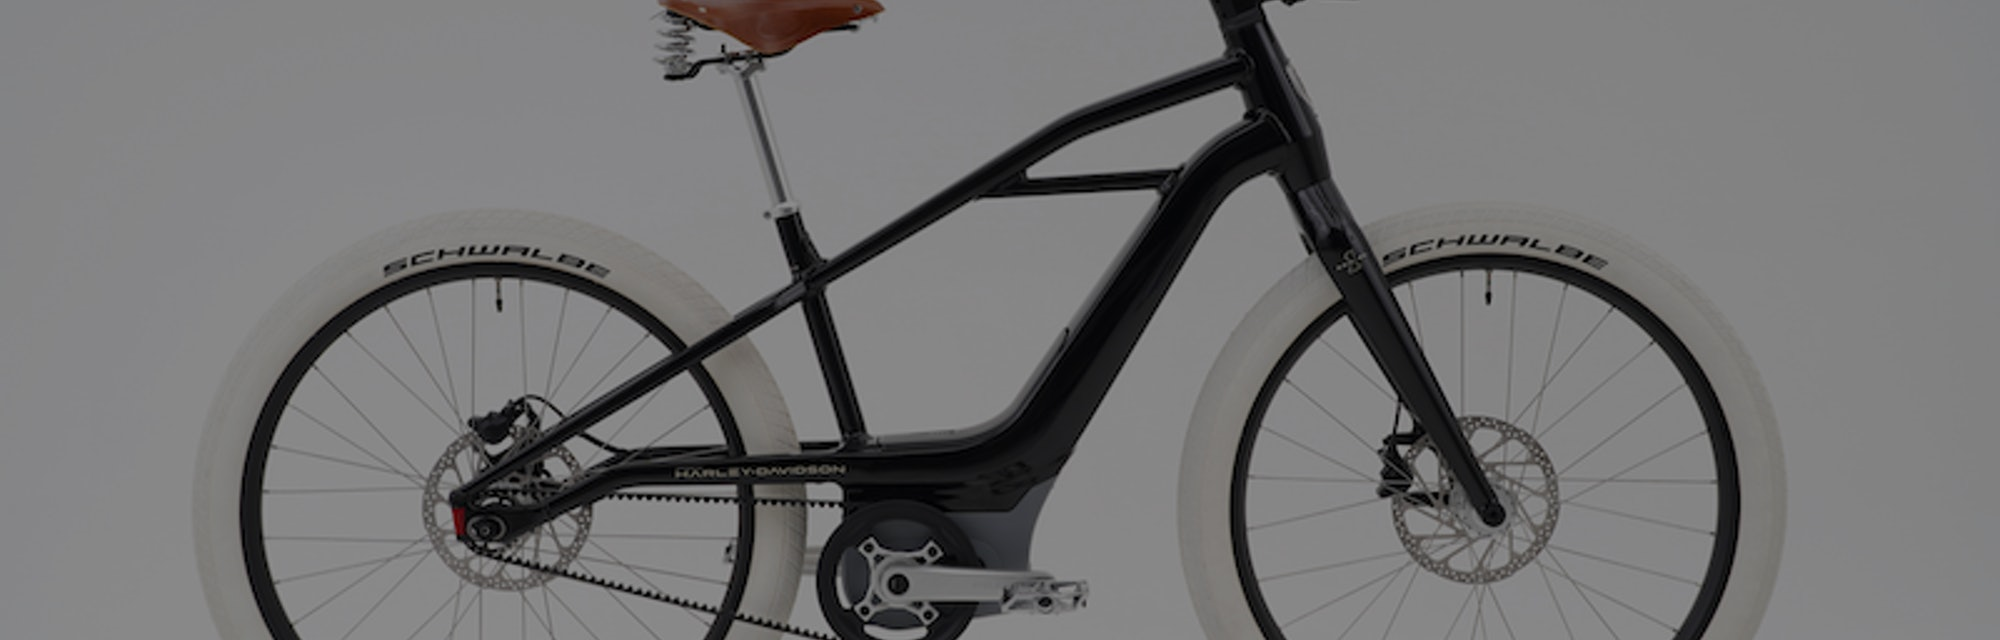 Serial 1 has nearly sold out of its limited edition, MOSH/TRIBUTE electric bike.